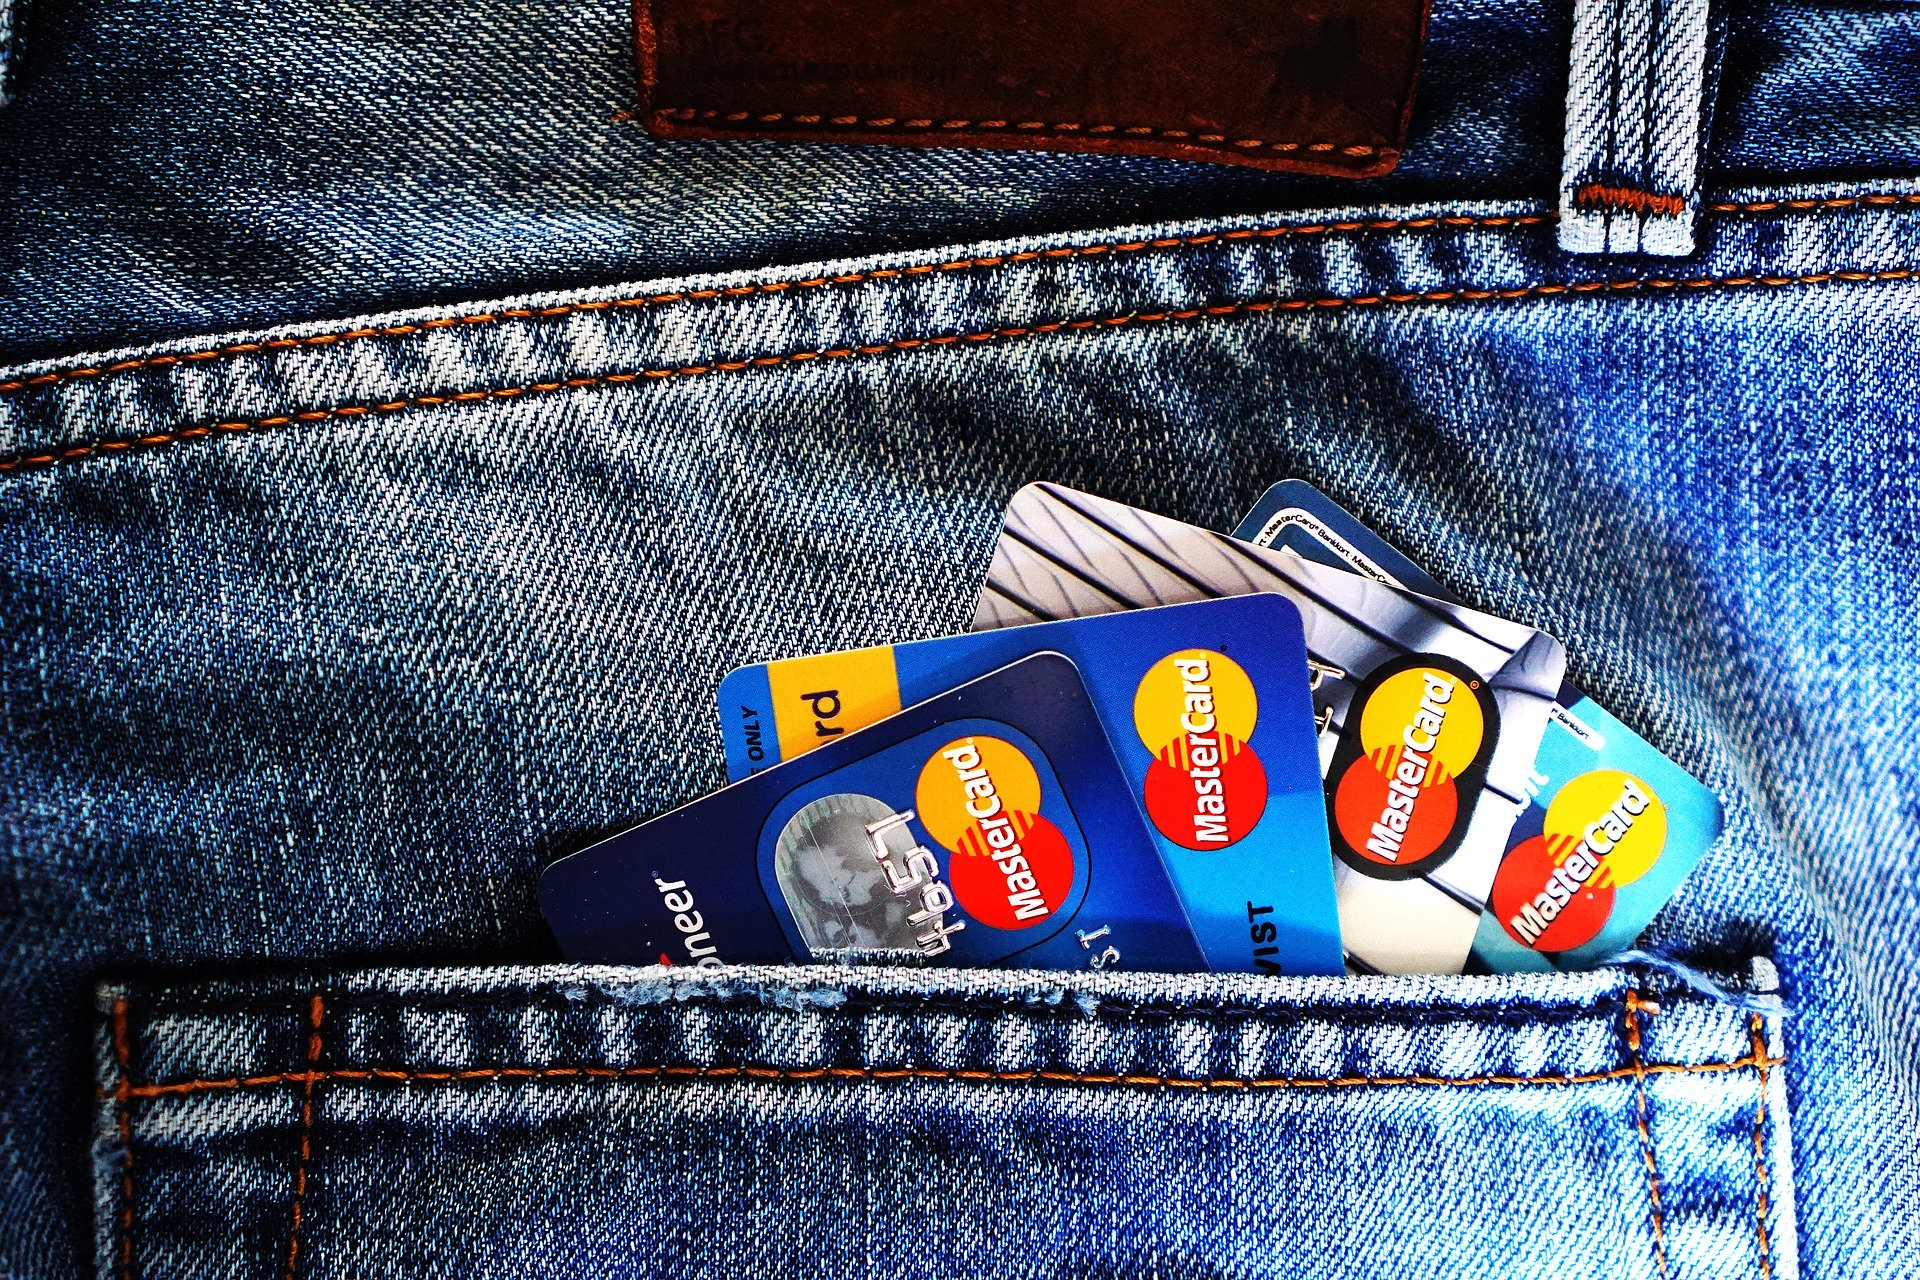 CEE Bank Card Fraud Trends